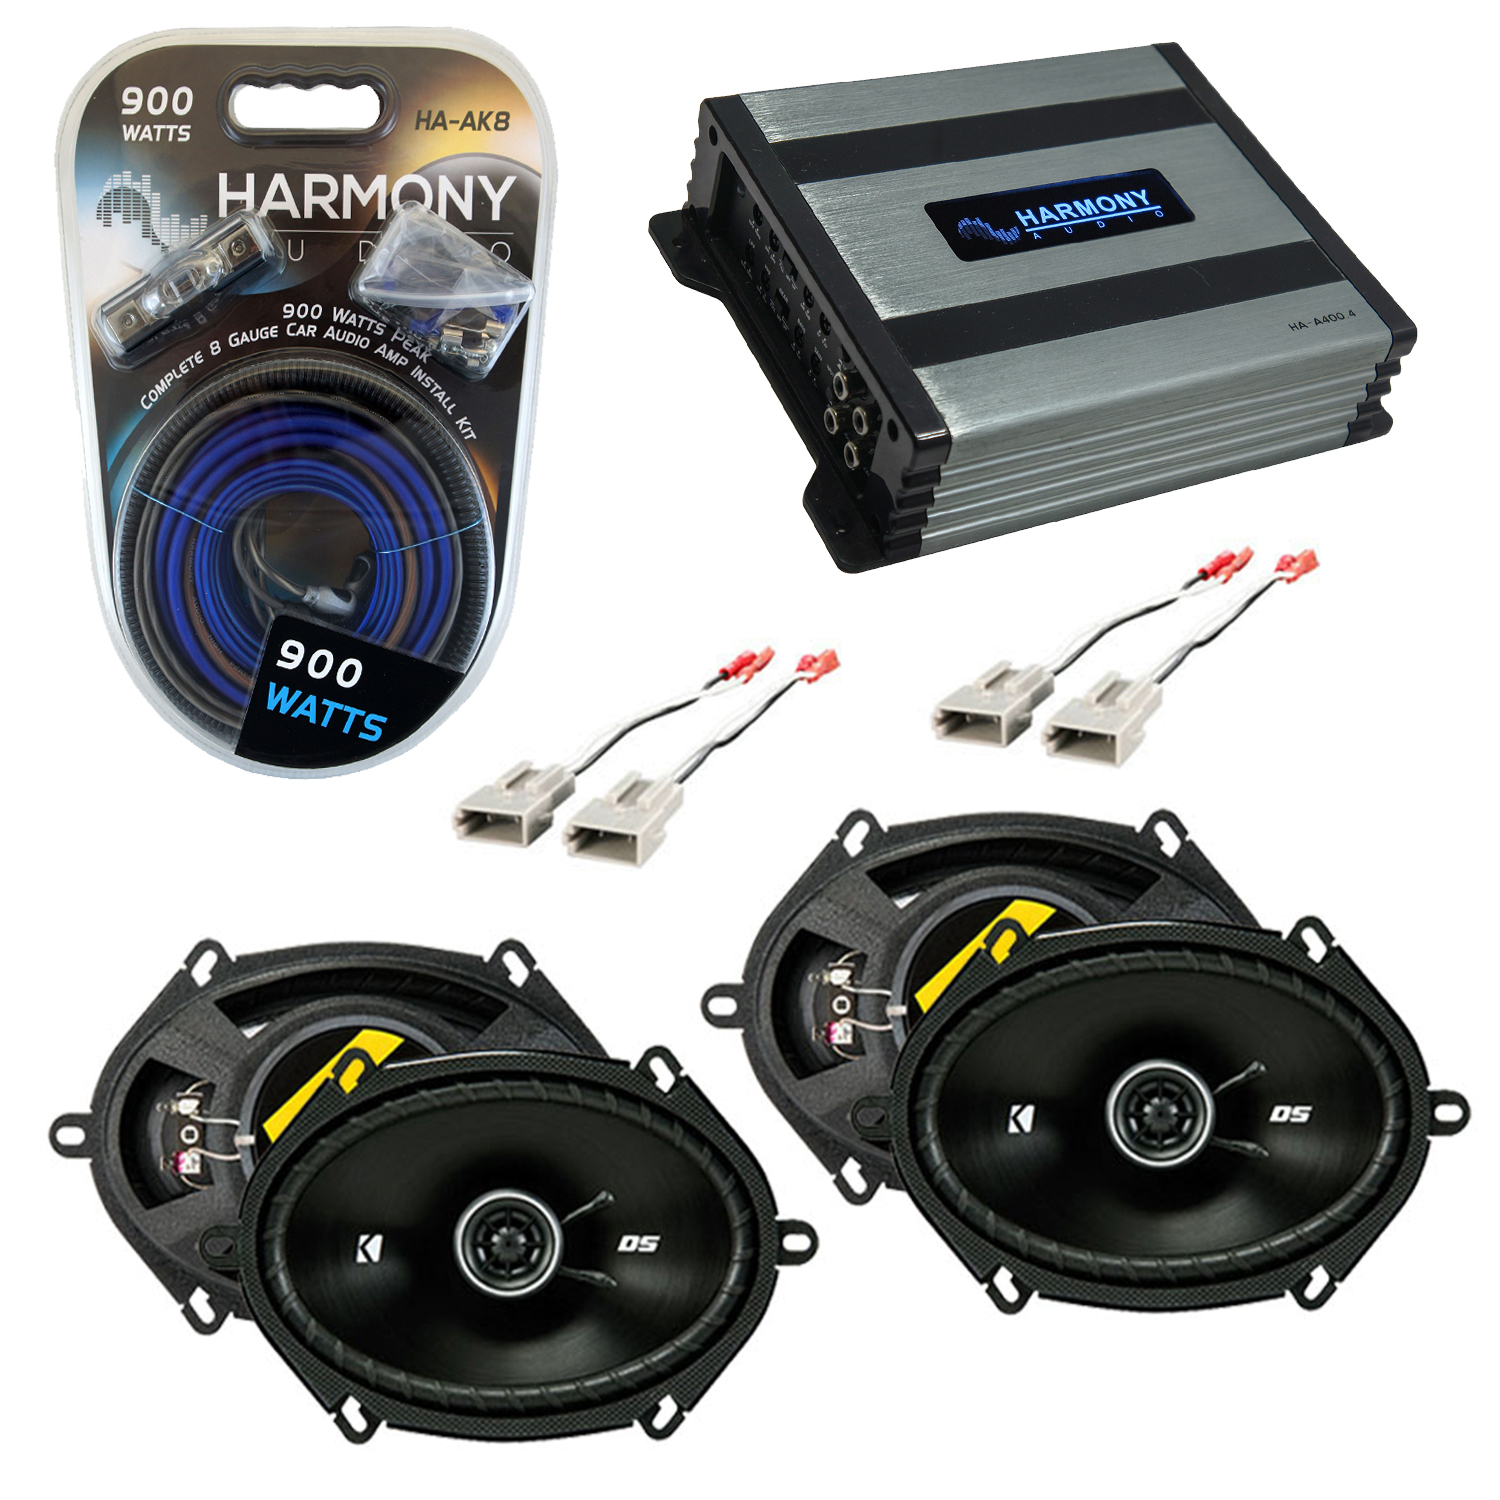 Compatible with Ford Thunderbird 1989-1997 Speaker Replacement Kicker (2) DSC68 & Harmony HA-A400.4 Amp